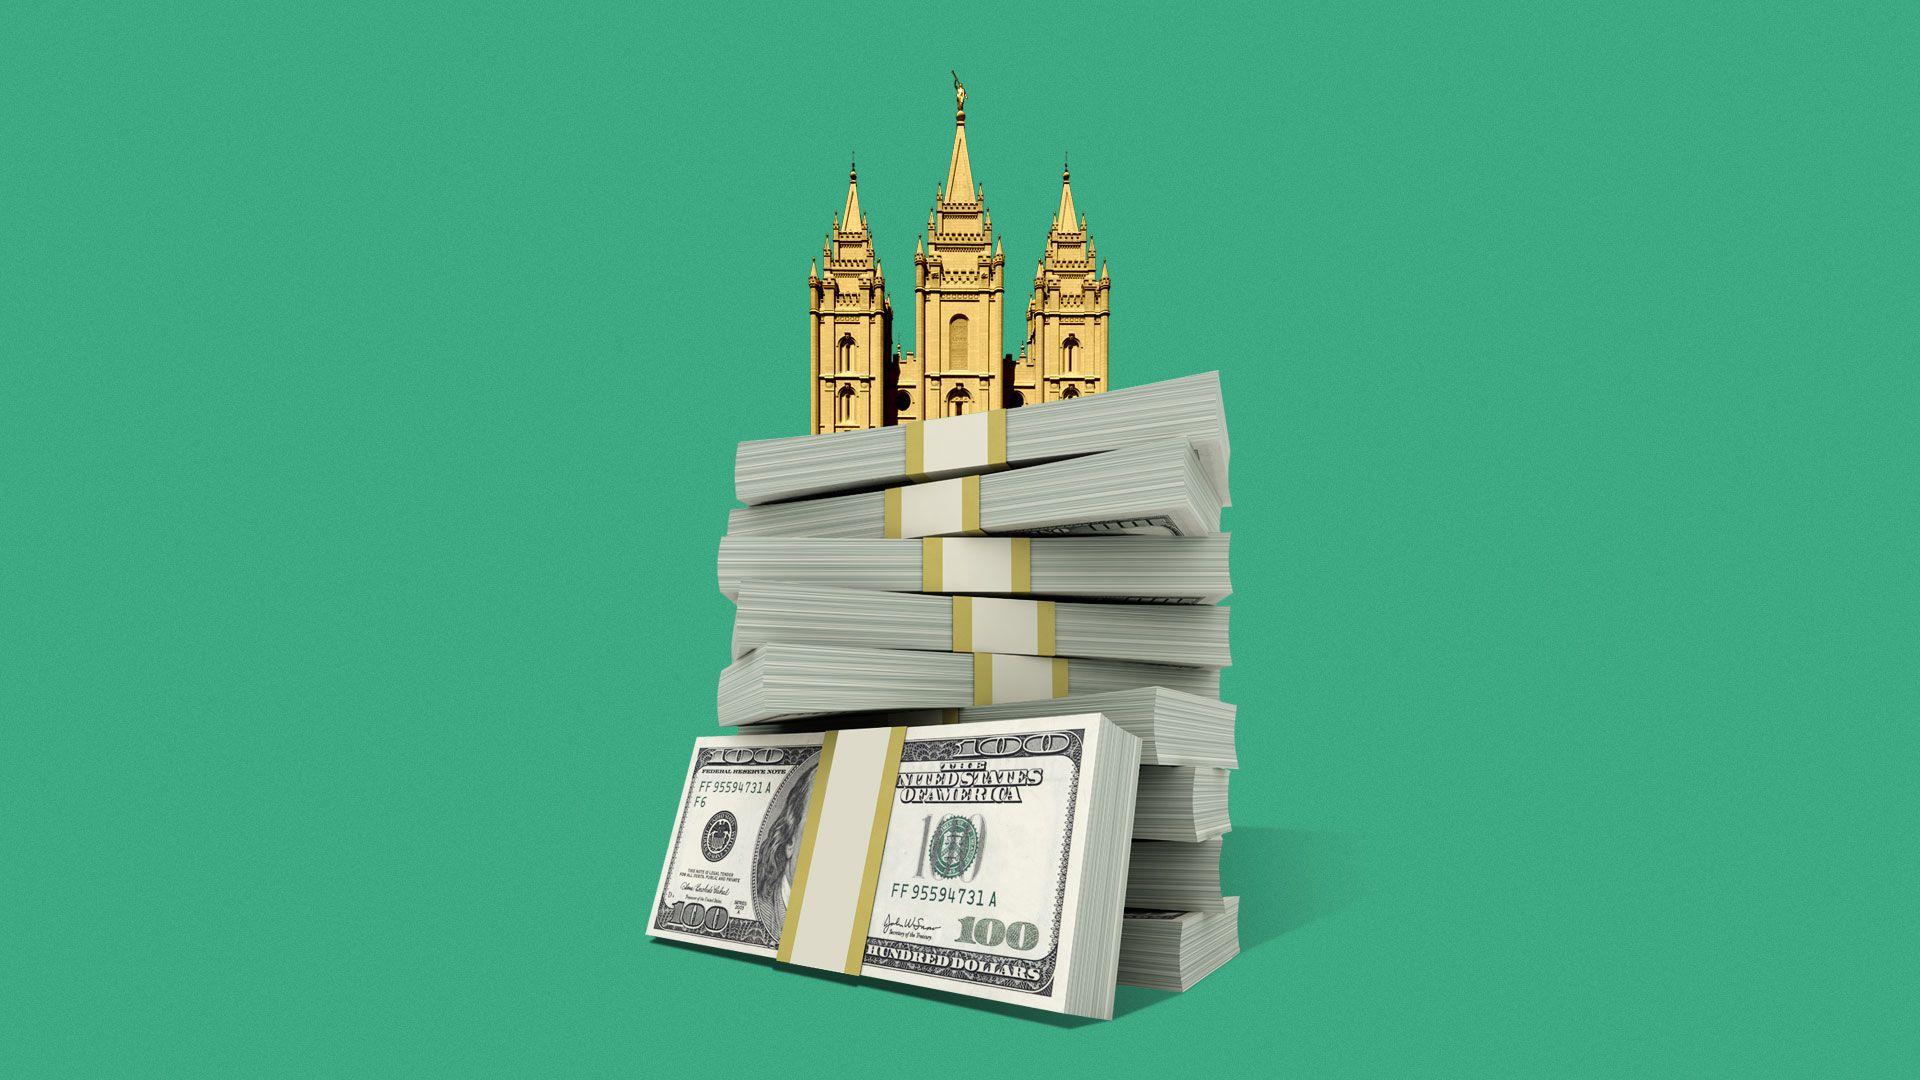 Illustration of the Mormon Church on a pile of money